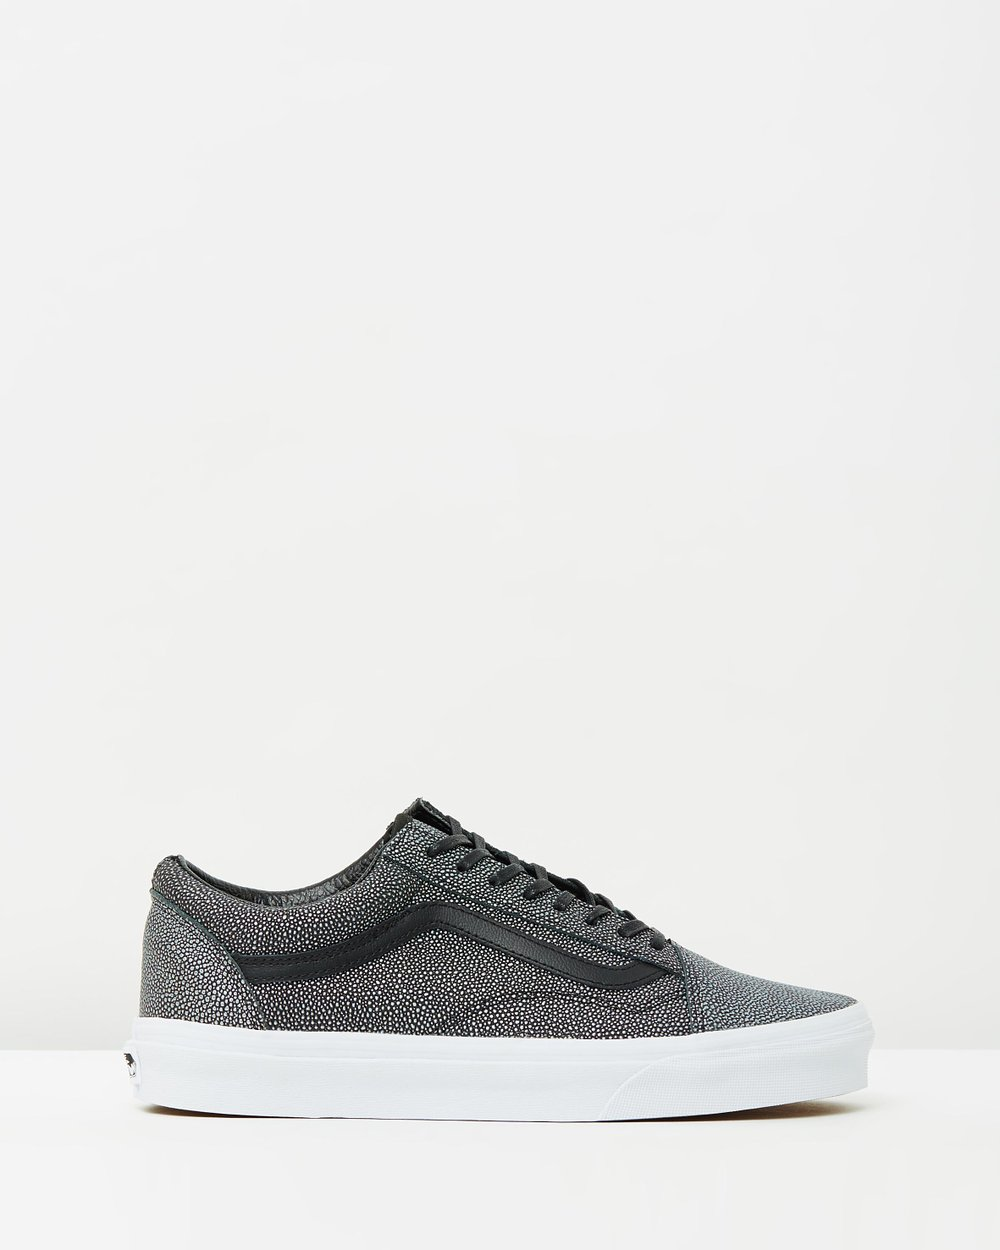 71a465f4bffe11 Old Skool by Vans Online